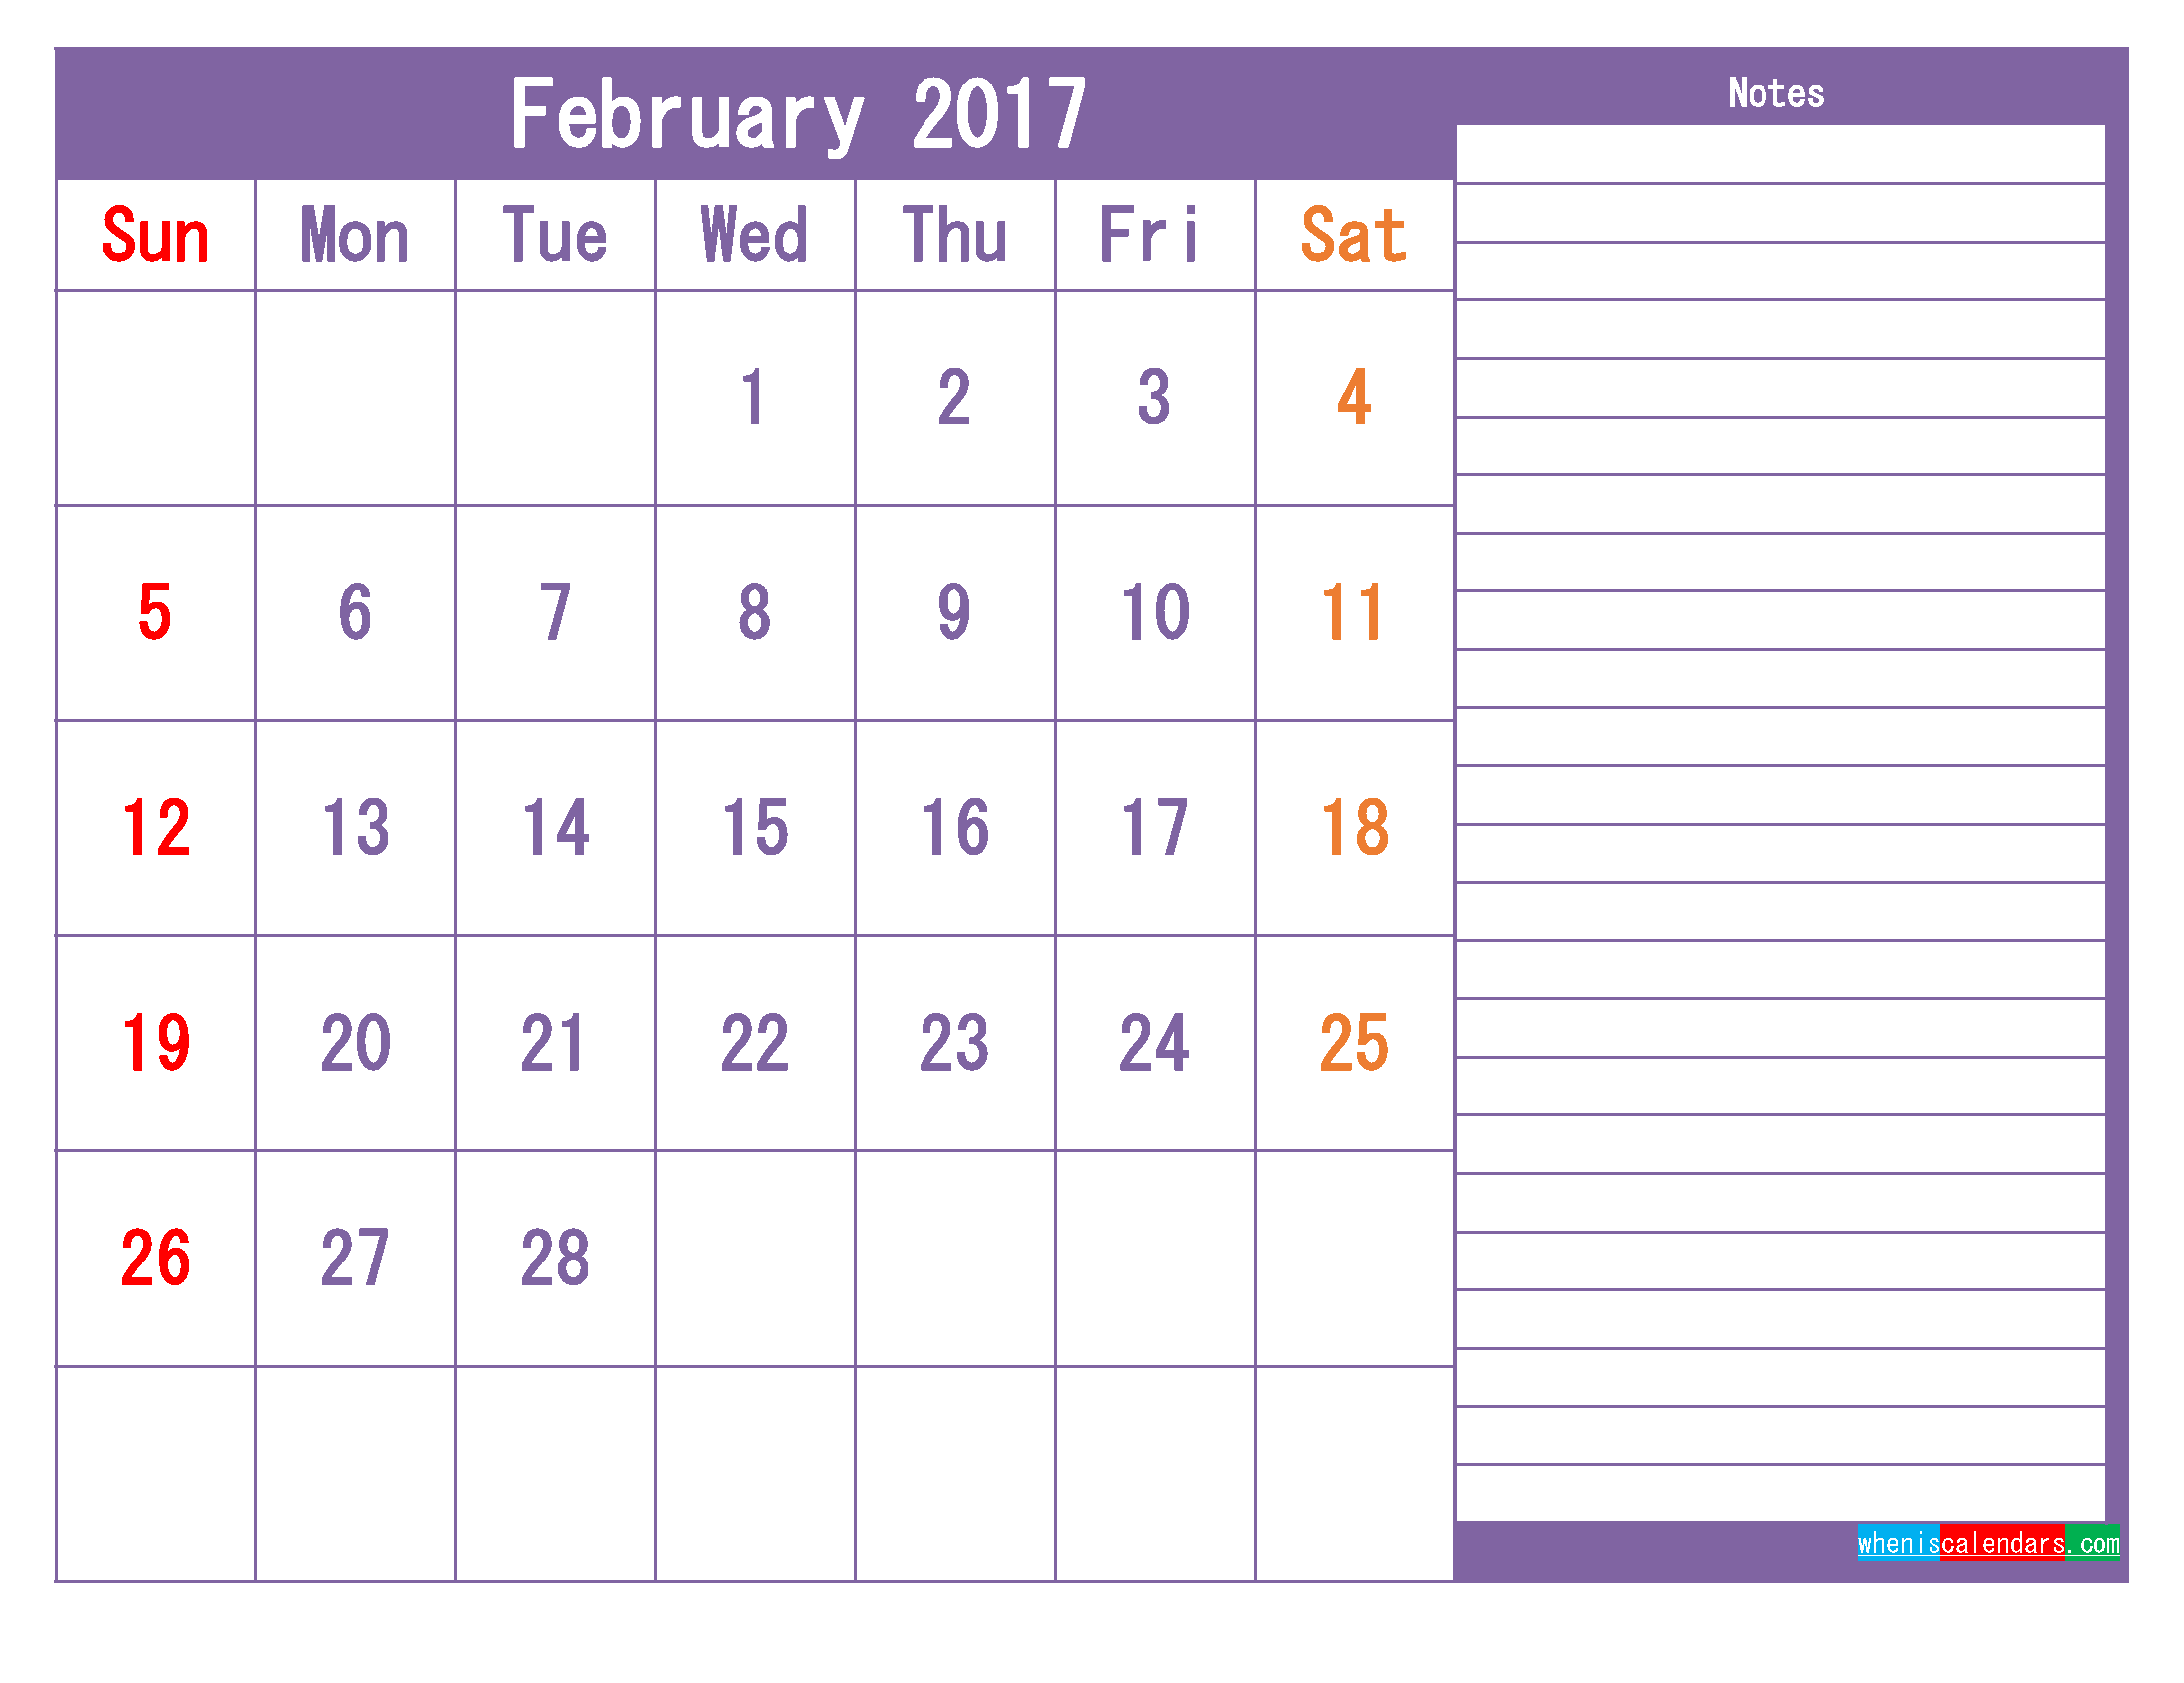 February 2017 Printable Calendar Template as PDF and PNG